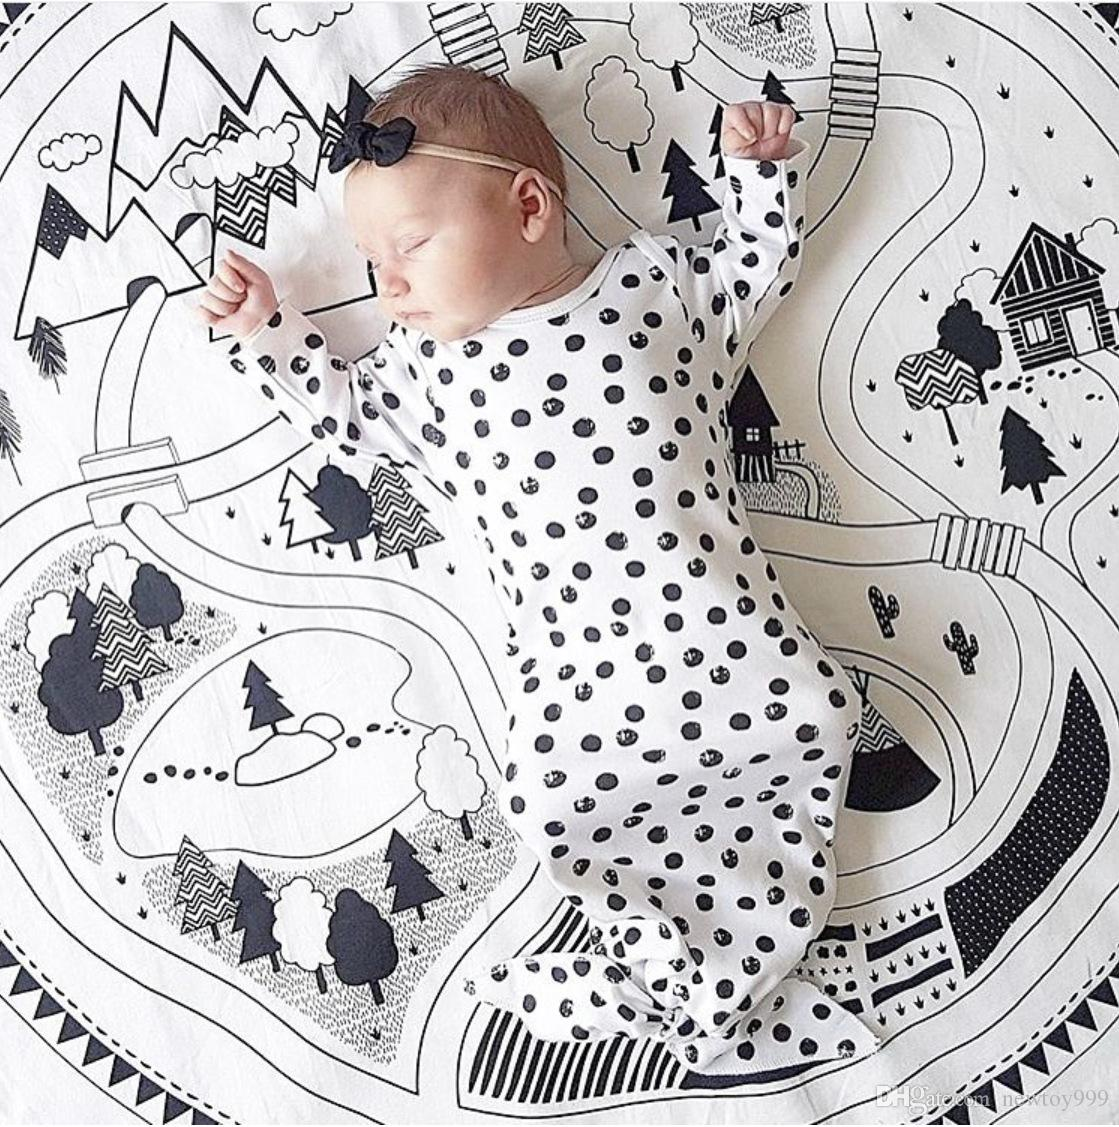 New INS Bambini Soft Round Stuoie di gioco 2016 Kids Cotton Crawling Blanket Gioco Game Indoor Outdoor Mat Baby Room Decoration Gioco rotondo Tappeto